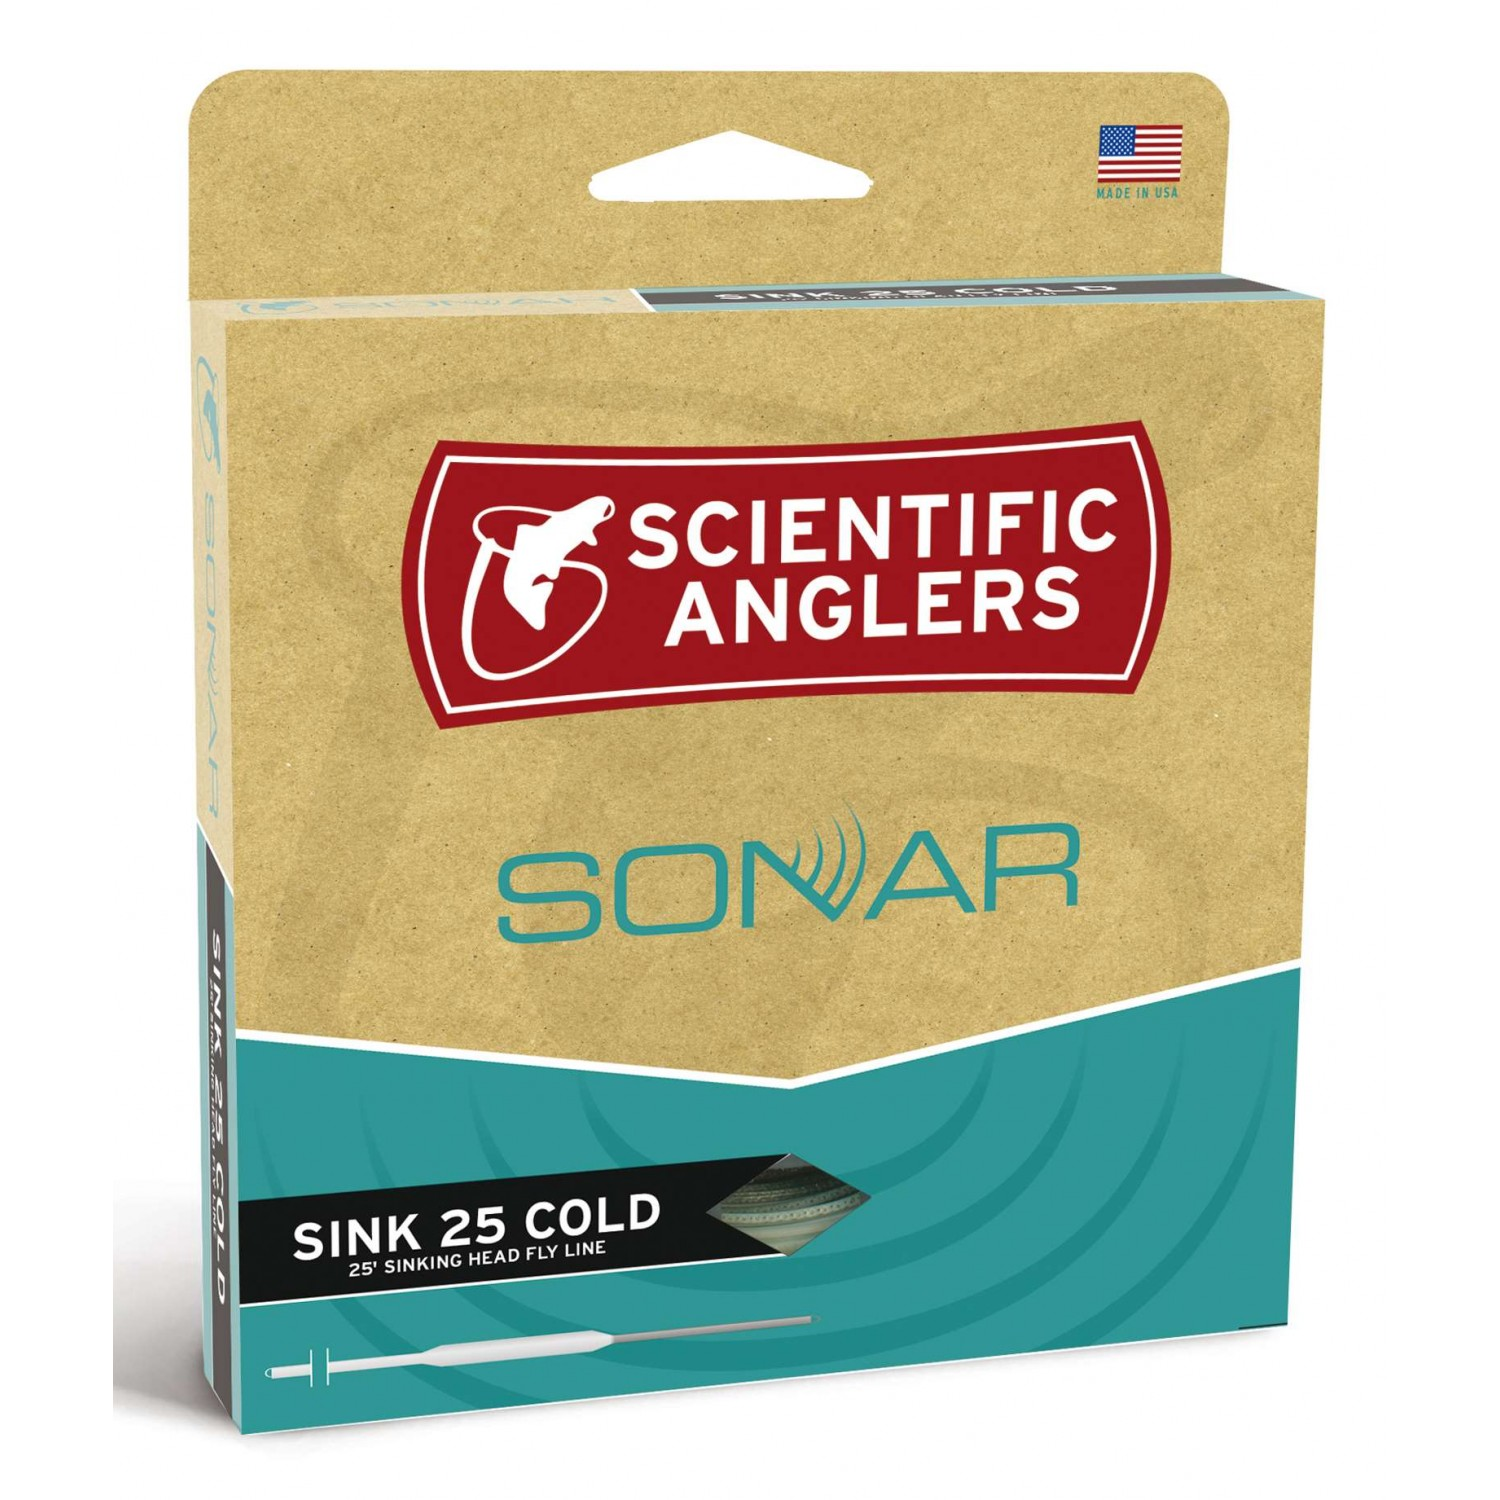 Scientific Anglers - Sonar Sink 25 (Cold)